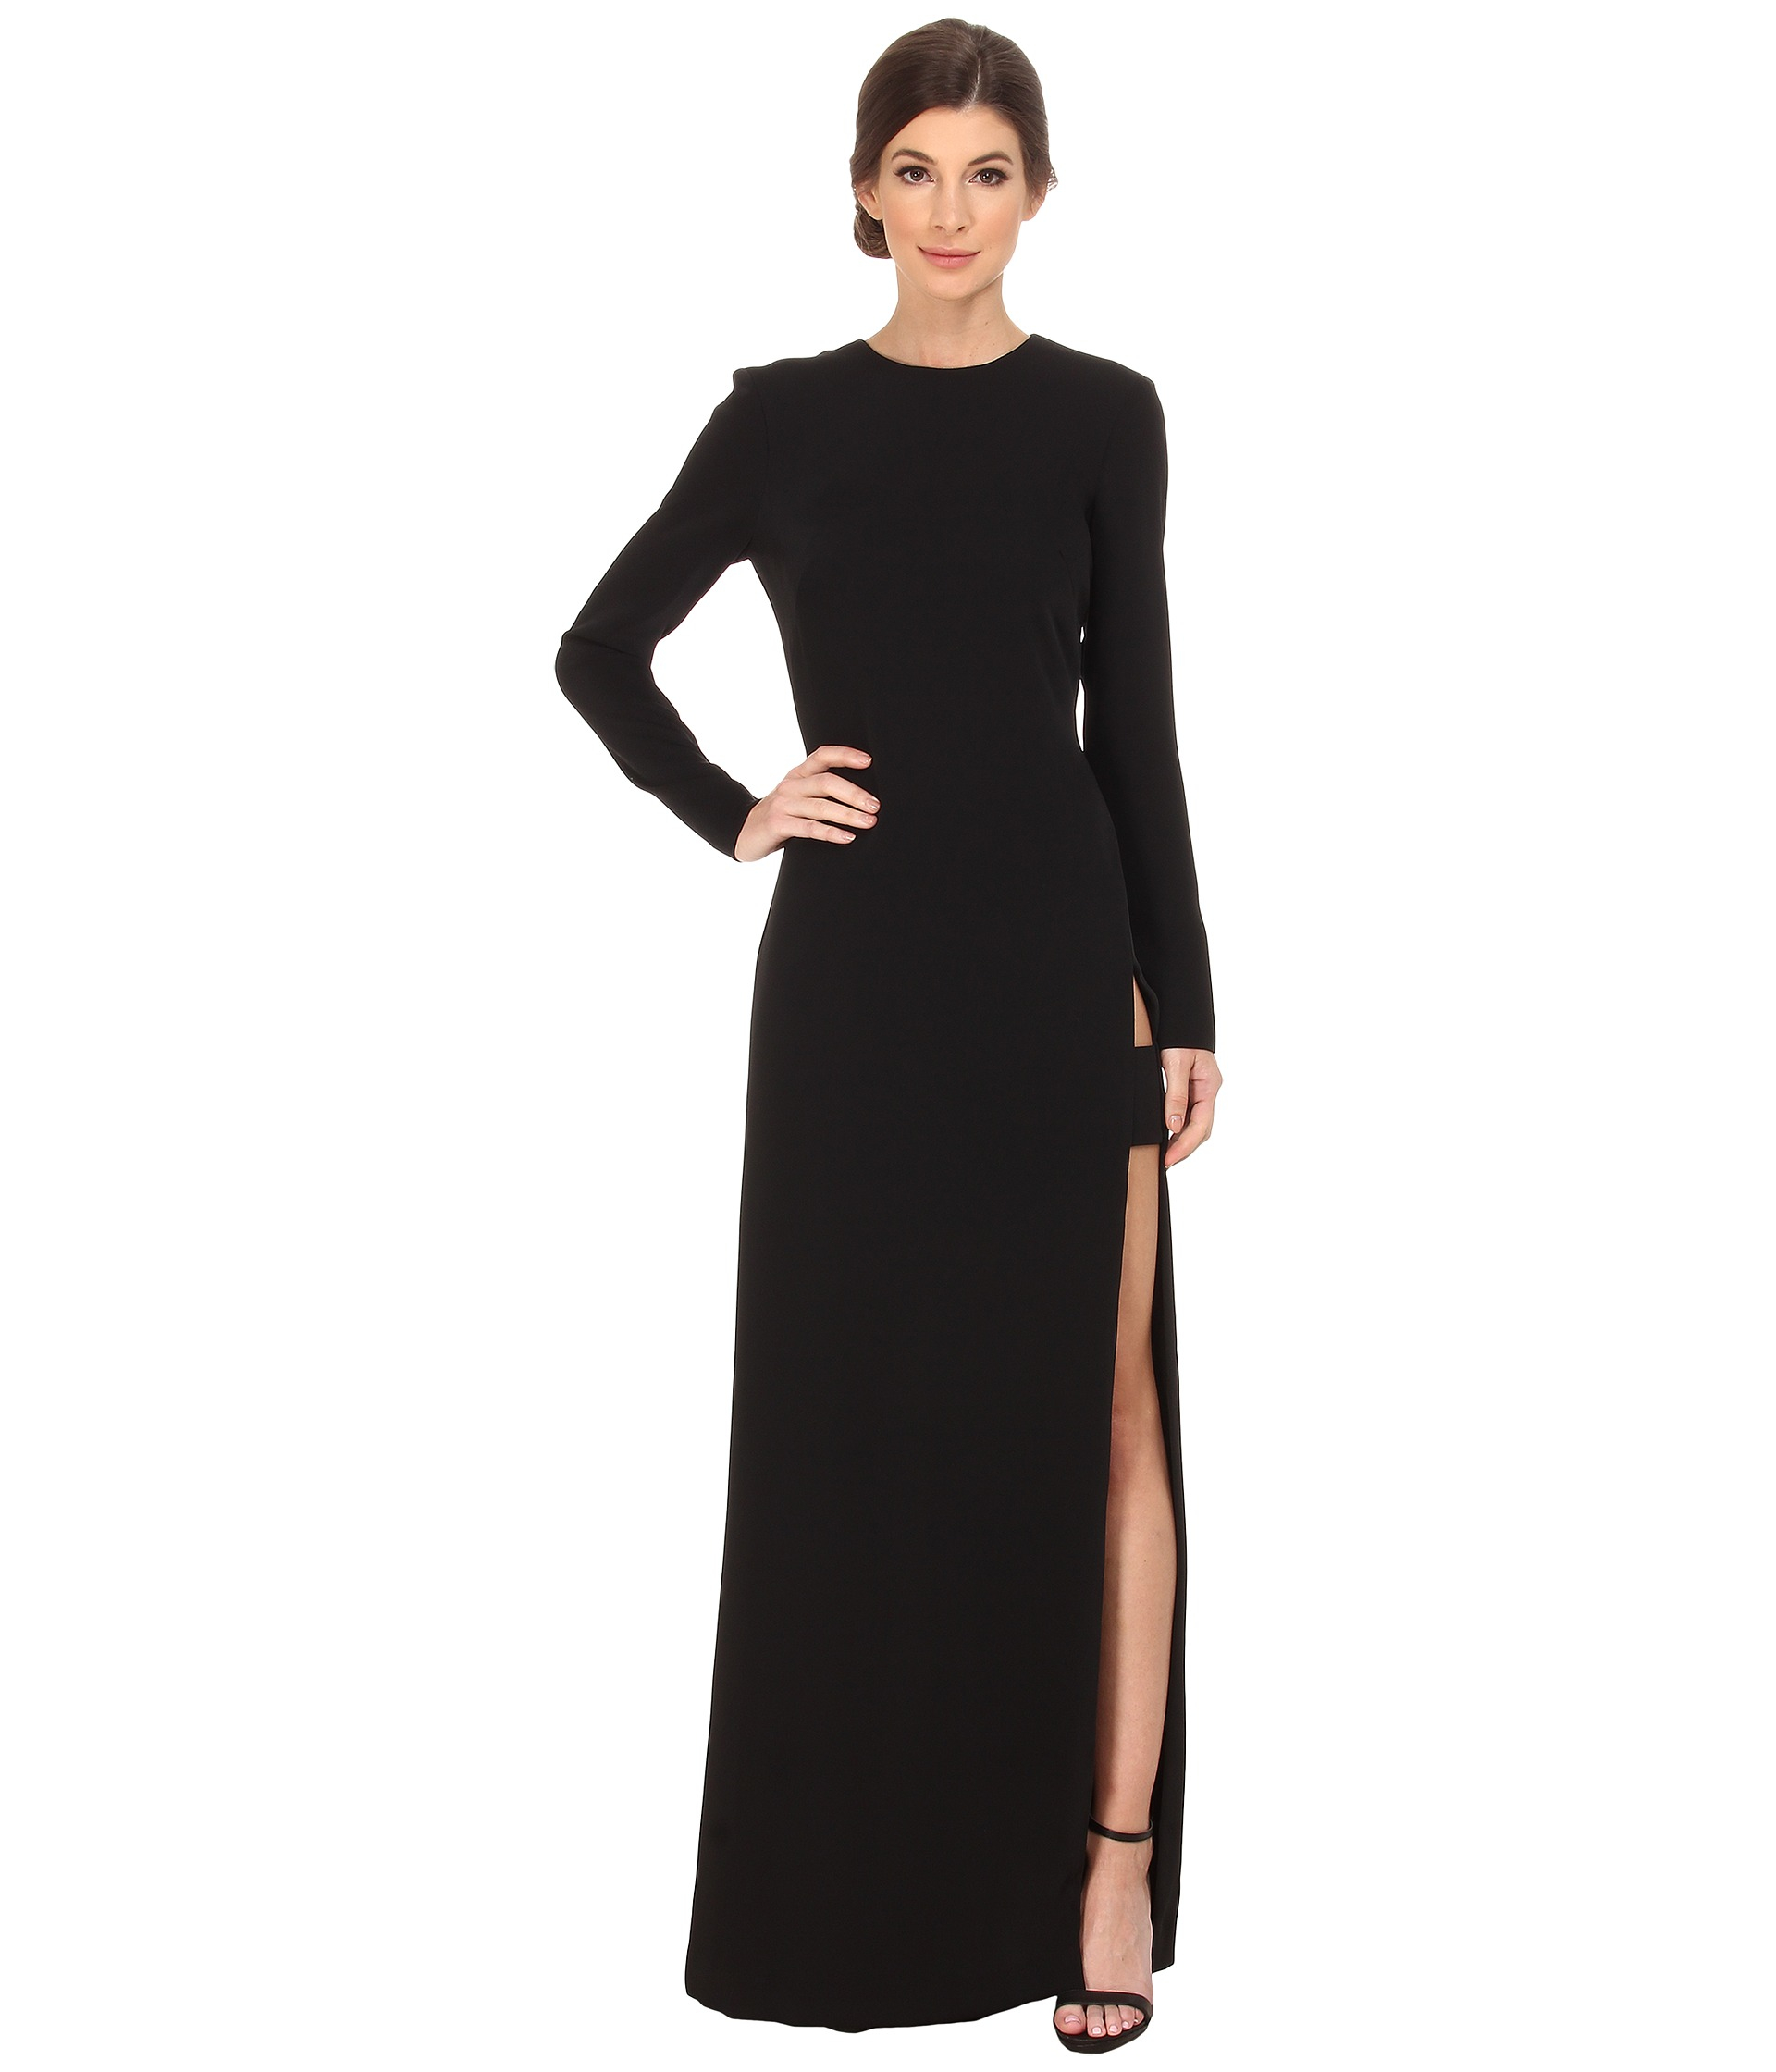 f0b66235880 JILL Jill Stuart Long Sleeve High Side Slit Gown in Black - Lyst